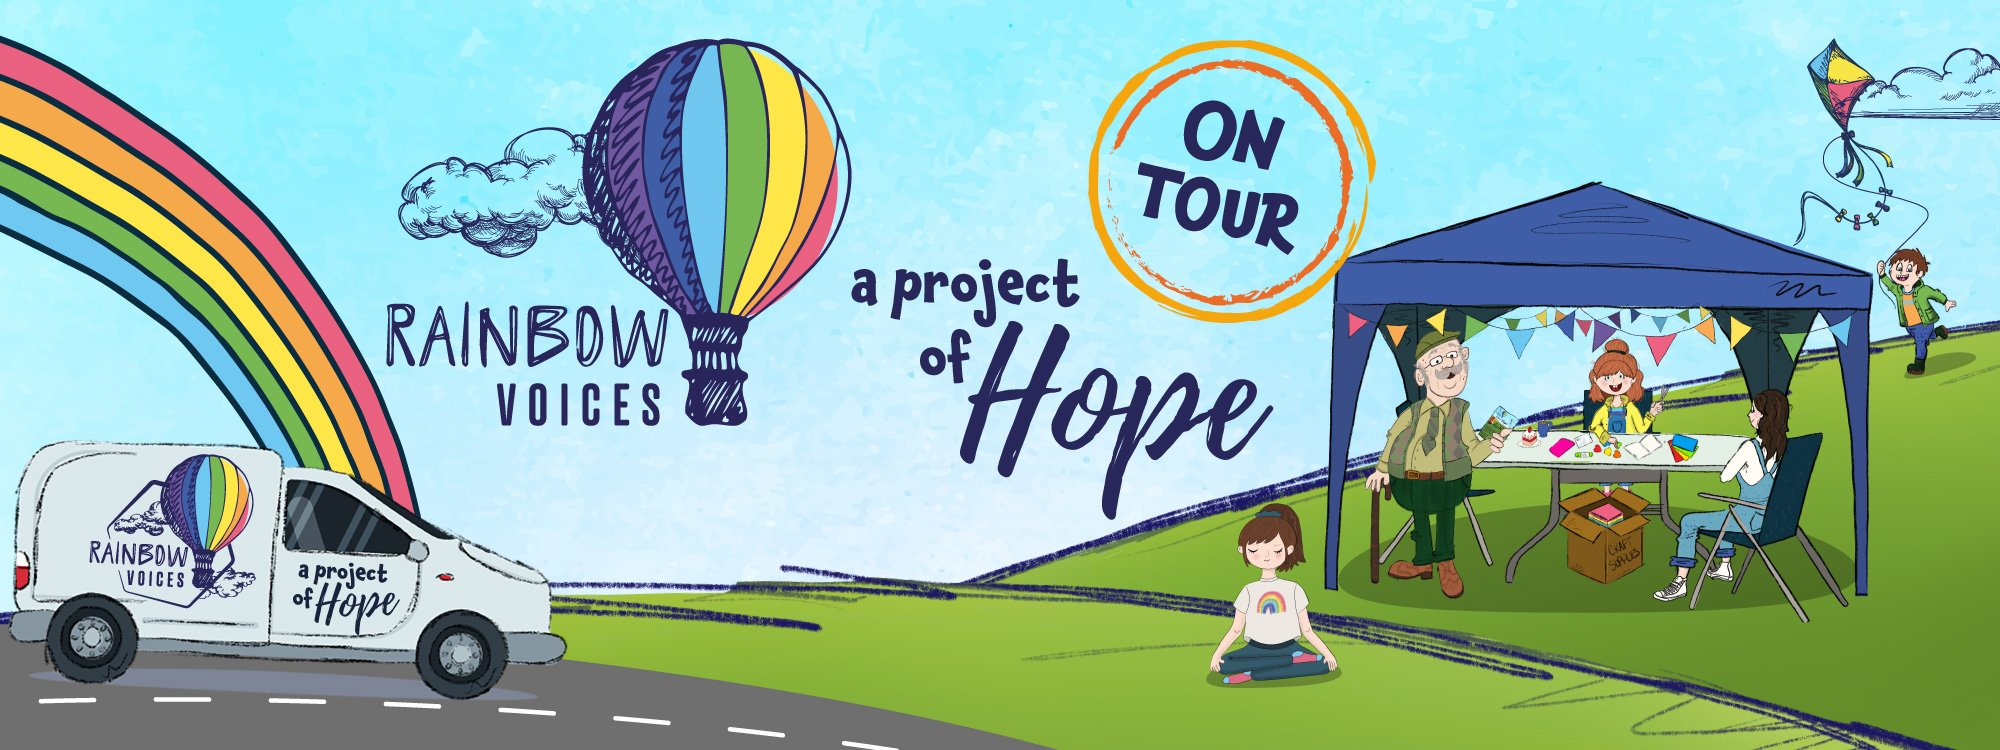 Rainbow Voices on Tour - A Project of Hope